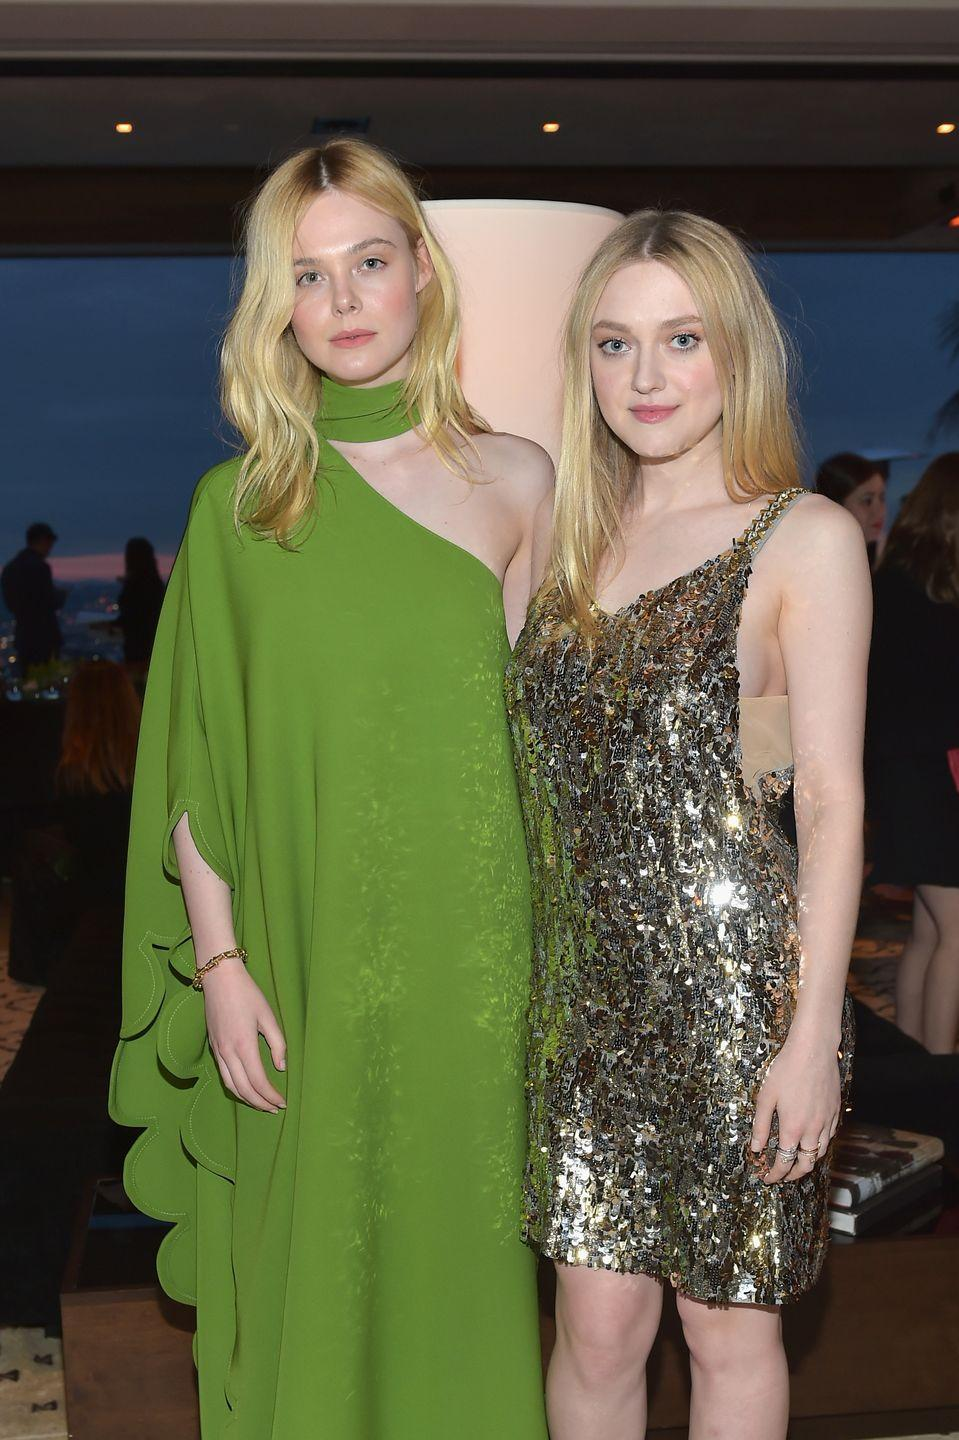 <p>From their fair skin and blonde hair to their notable red carpet fashion and impressive acting chops, the Fannings are Hollywood's ultimate power duo. After Dakota made a name for herself as a child star in the early aughts, her little sister Elle followed in her footsteps.</p>